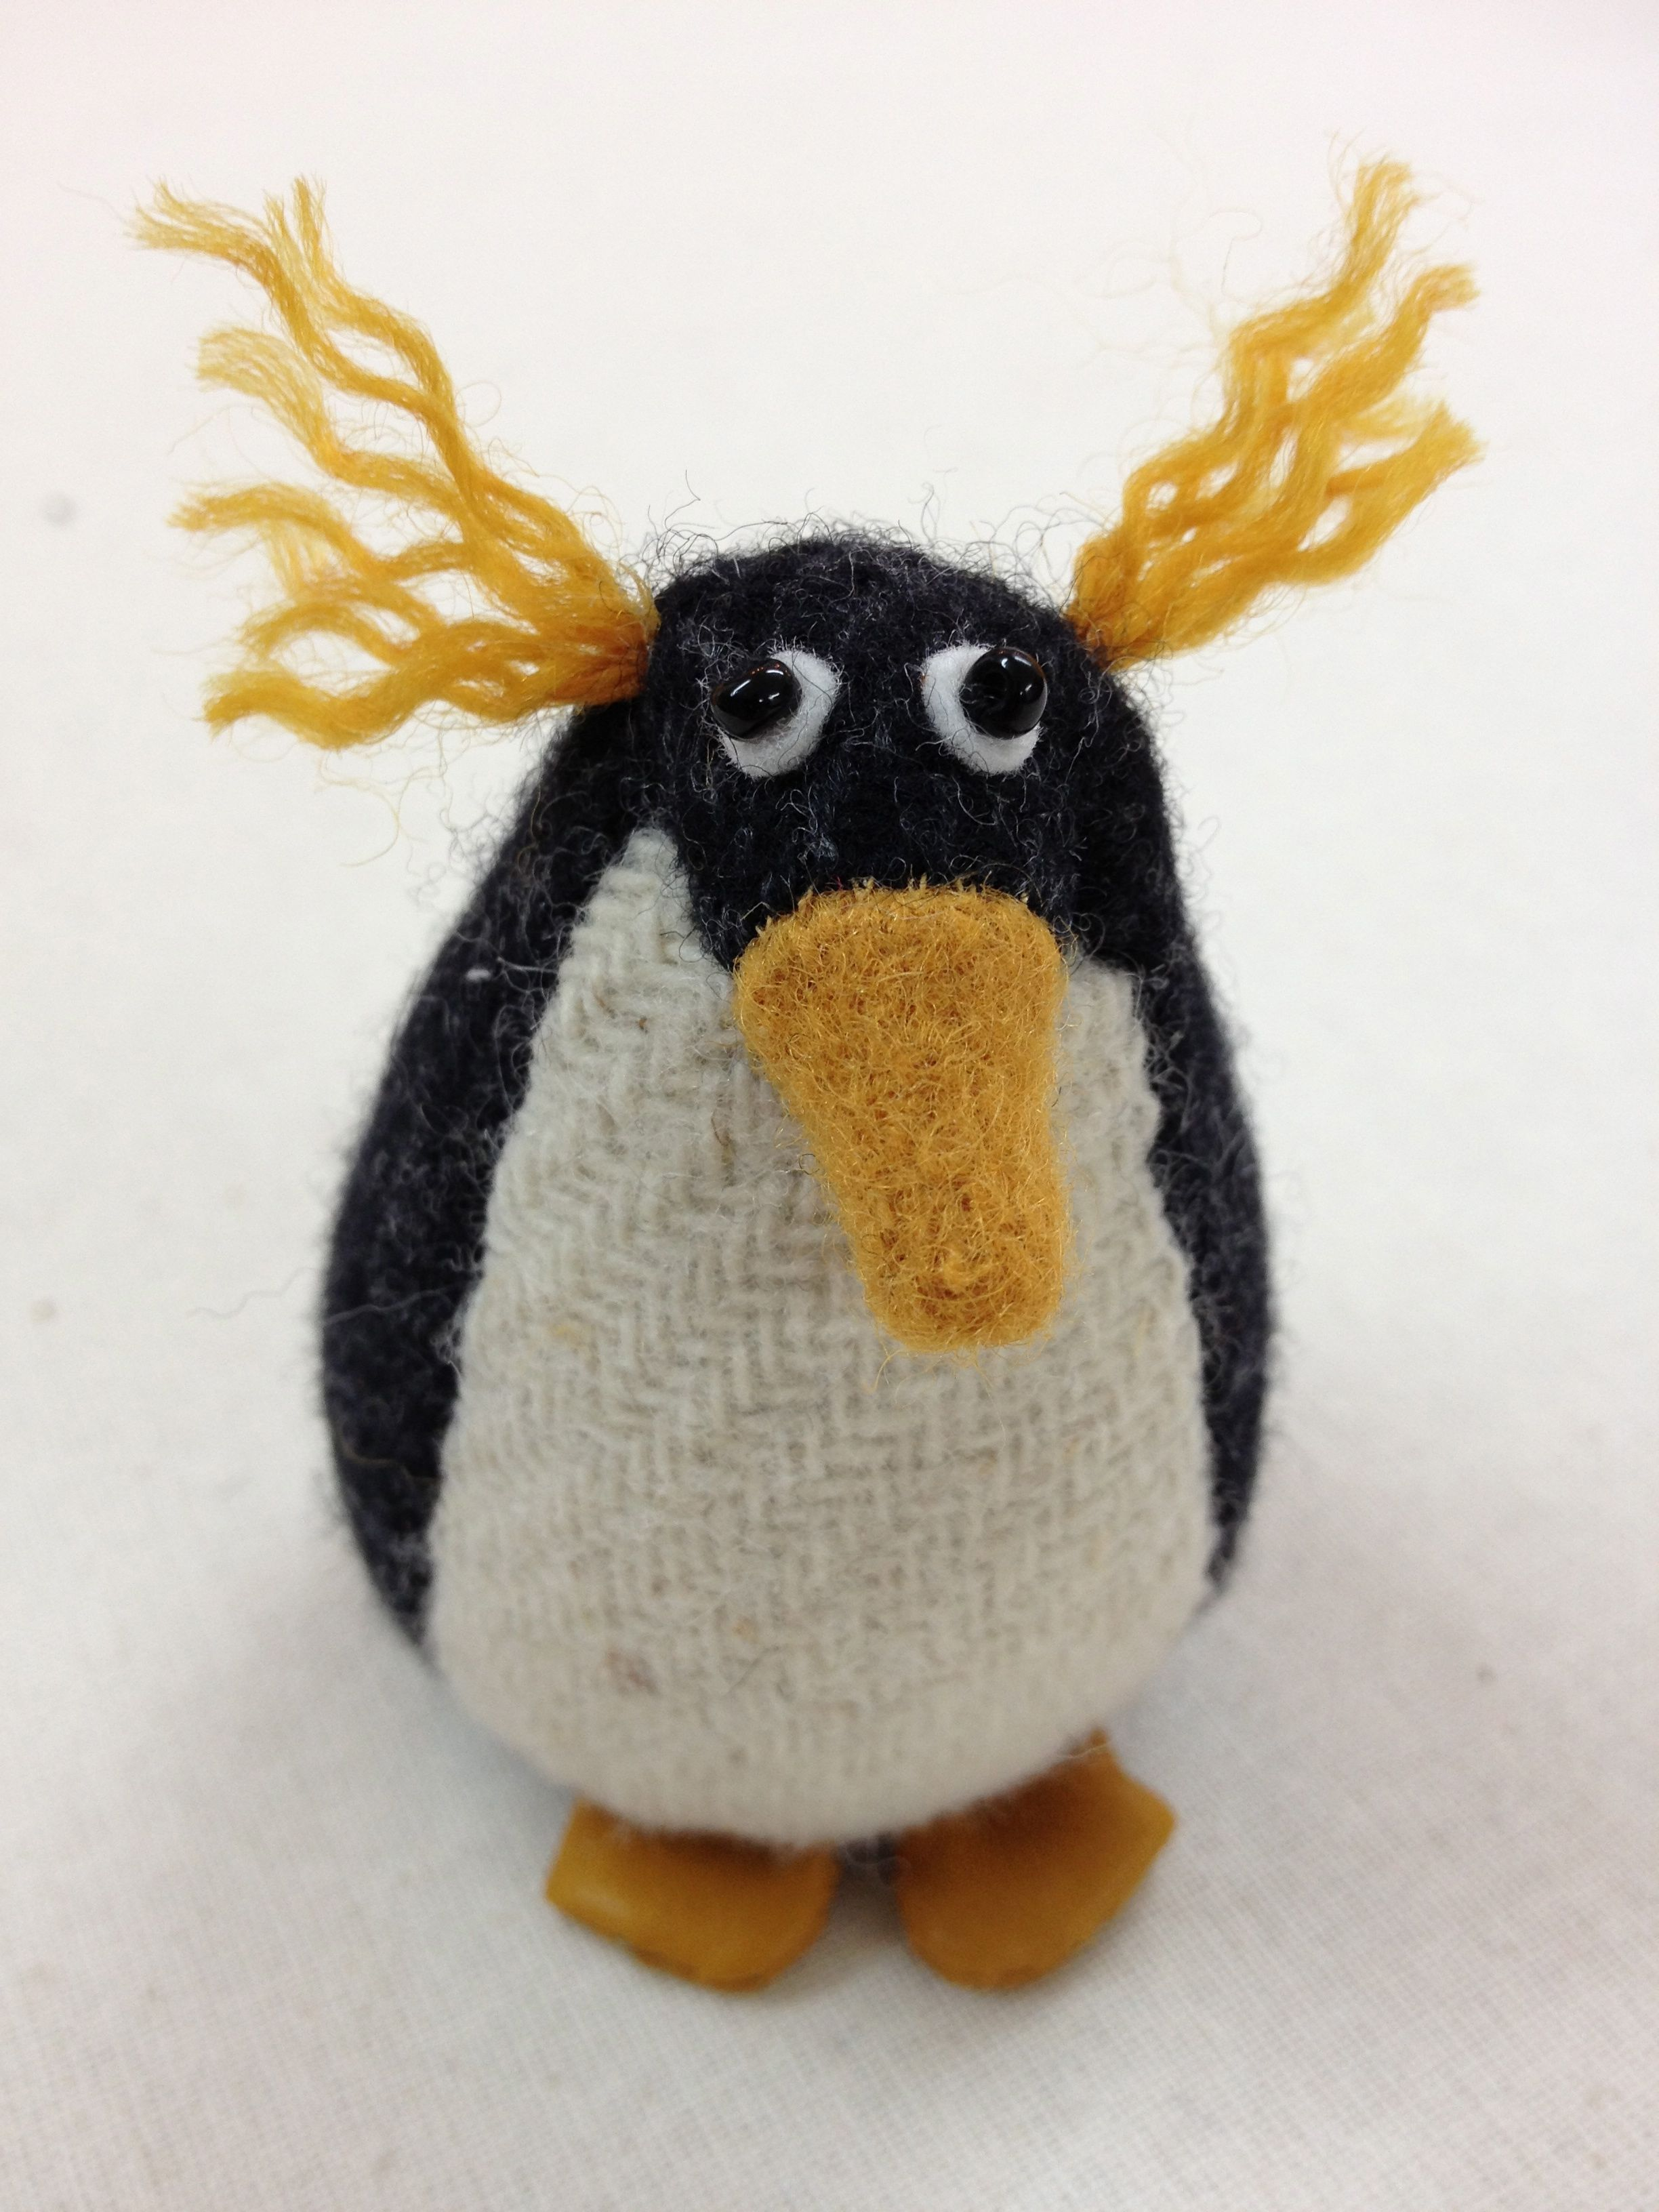 Handmade Pedro the Penguin tweed paperweight.